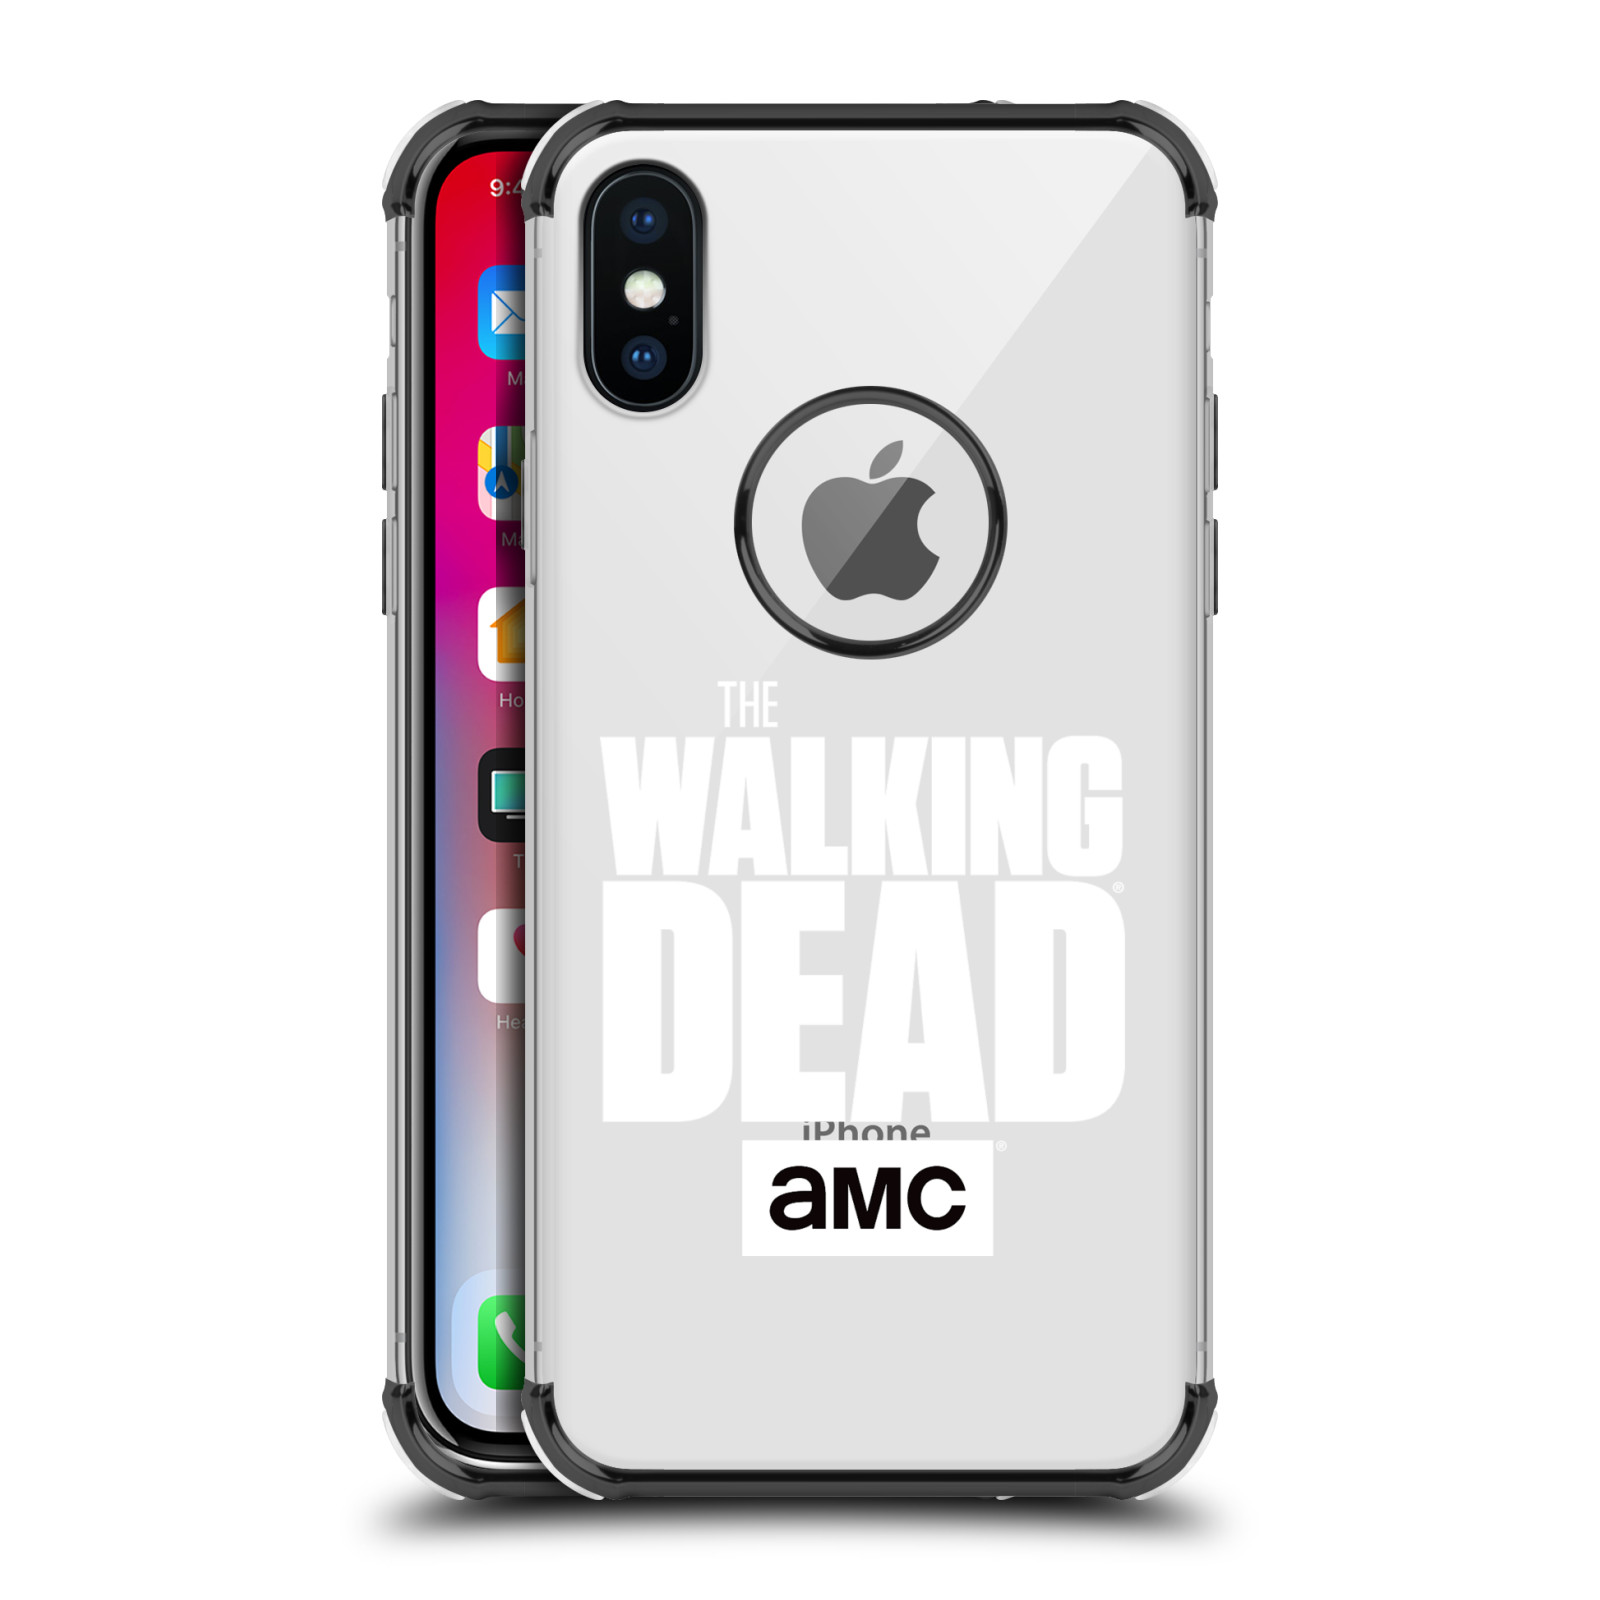 THE-WALKING-DEAD-VARIOUS-DESIGNS-BLACK-SHOCKPROOF-FENDER-CASE-iPHONE-SAMSUNG-LG